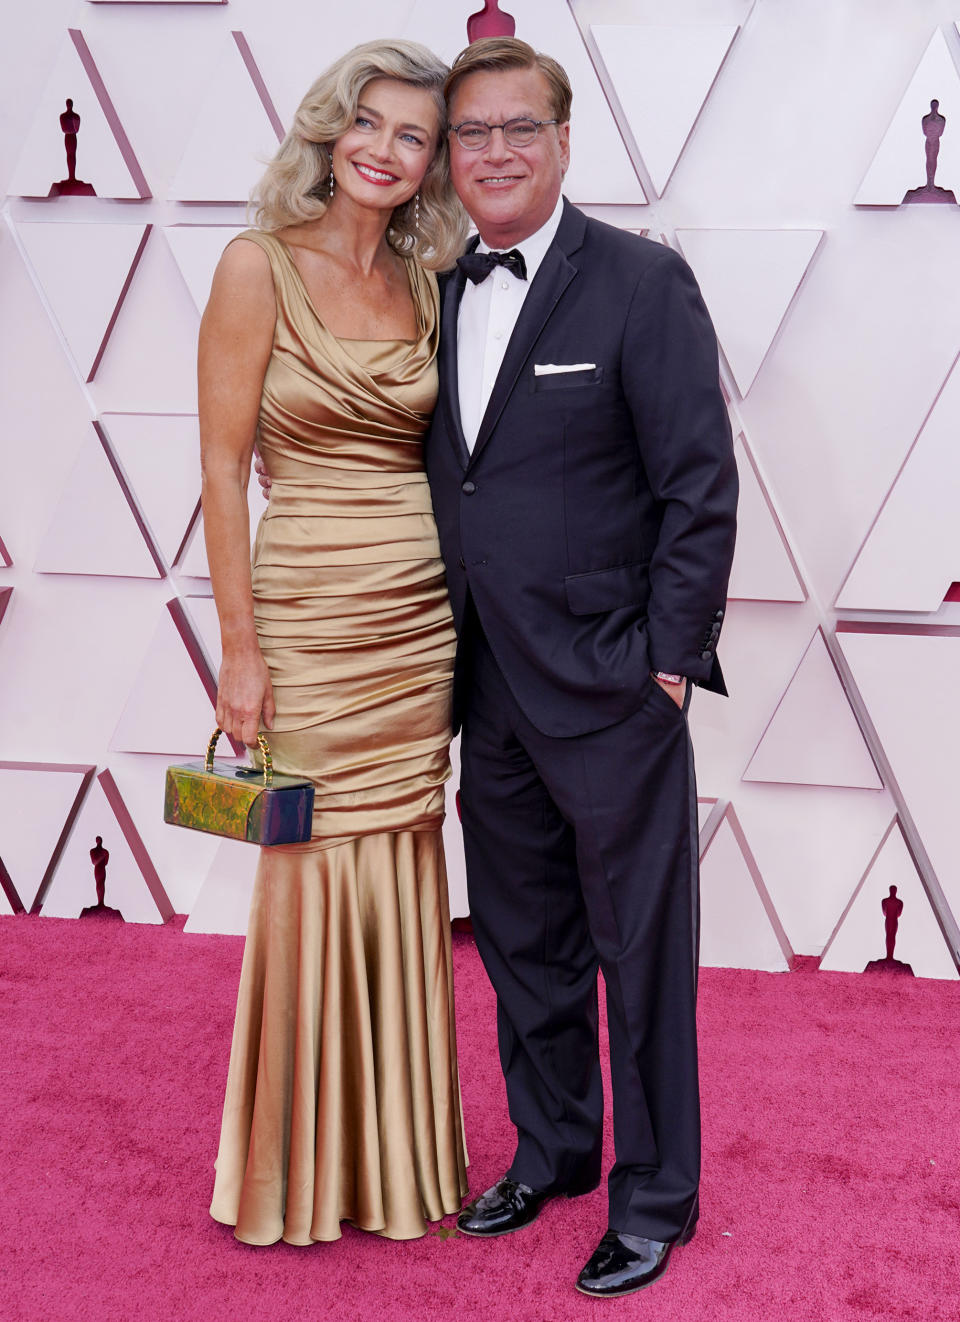 Paulina Porizkova wearing a gold dress on the red carpet with partner Aaron Sorkin at the 93rd Annual Academy Awards at Union Station on April 25, 2021 in Los Angeles, California